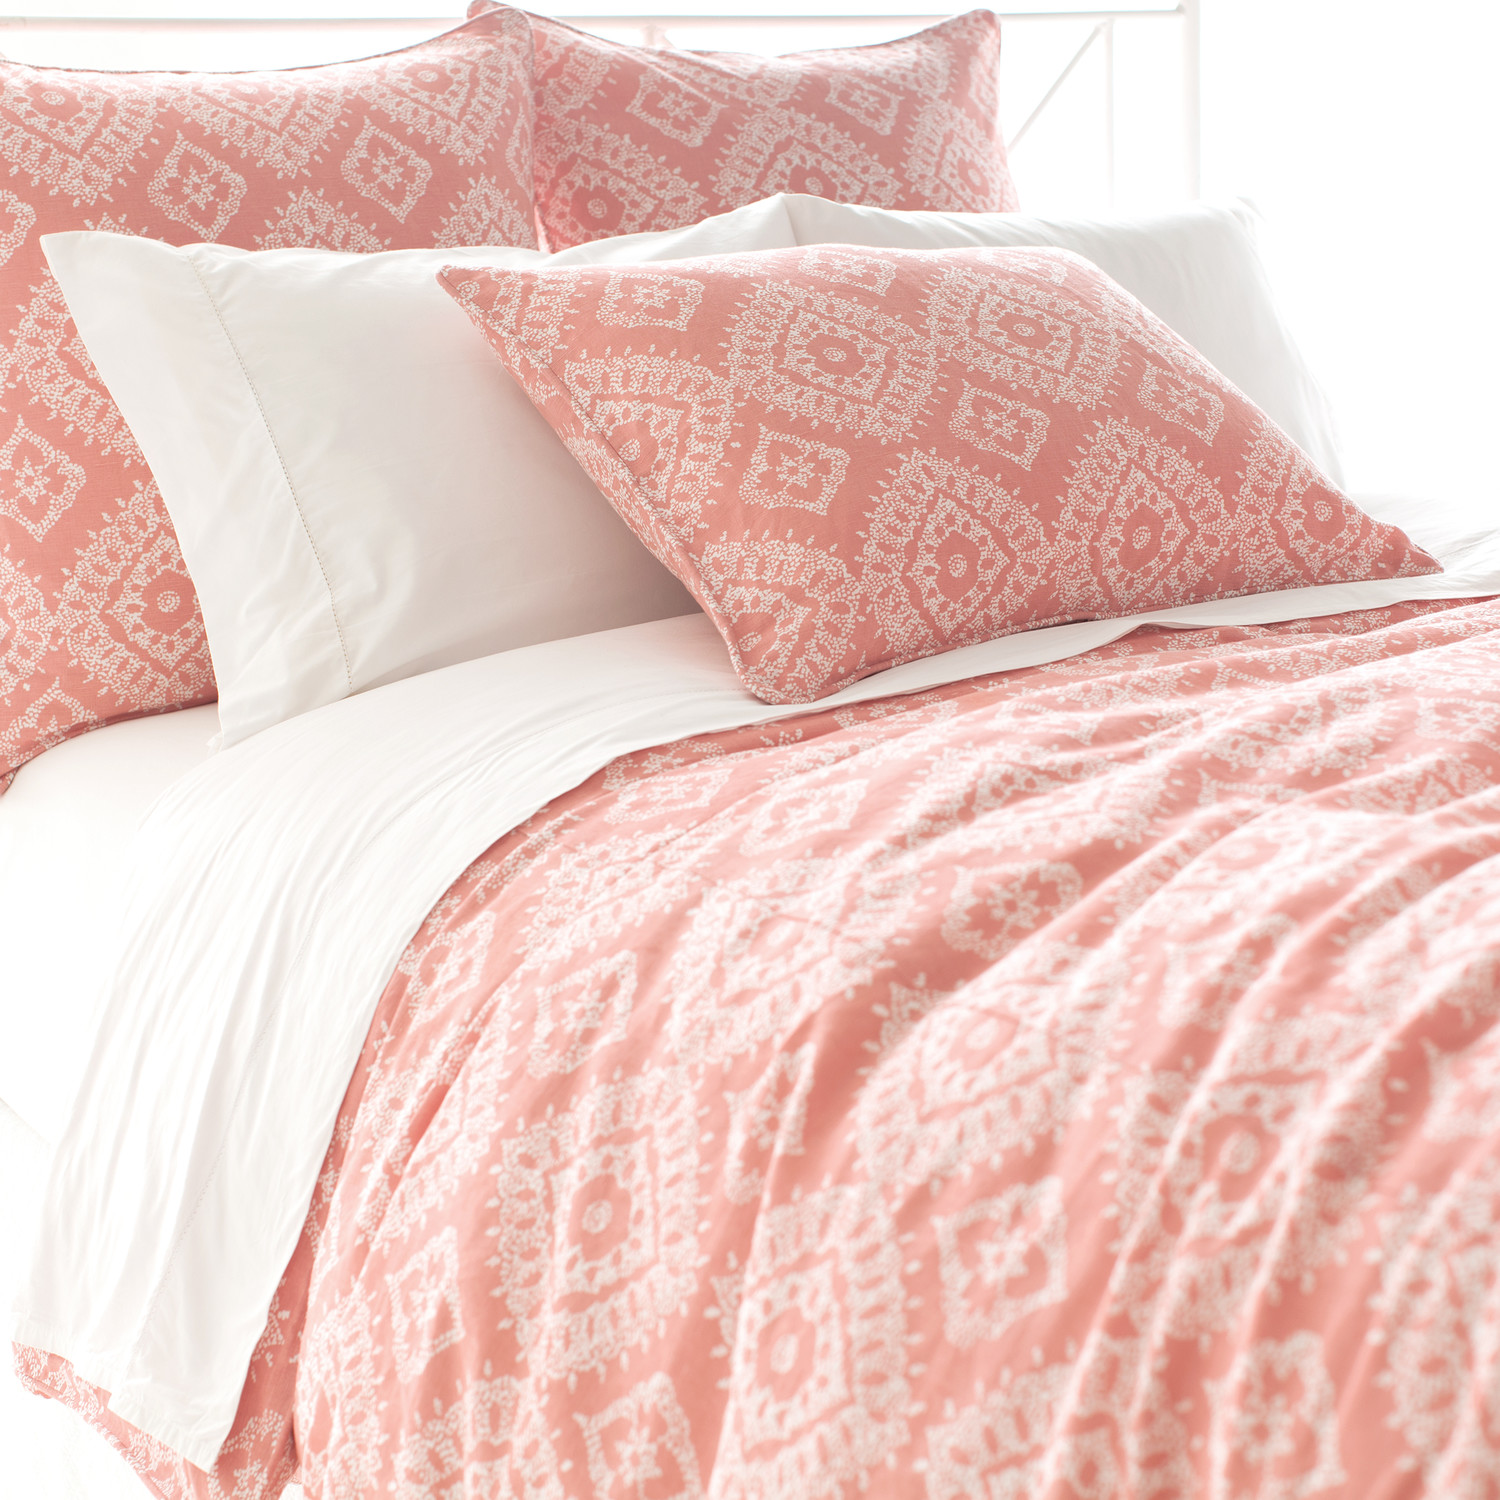 Lovely Pine Cone Hill Bedding For Interesting Bed Ideas: Lovely Pine Cone Hill Ramala Duvet Cover In Pink And White Theme For Bed Ideas